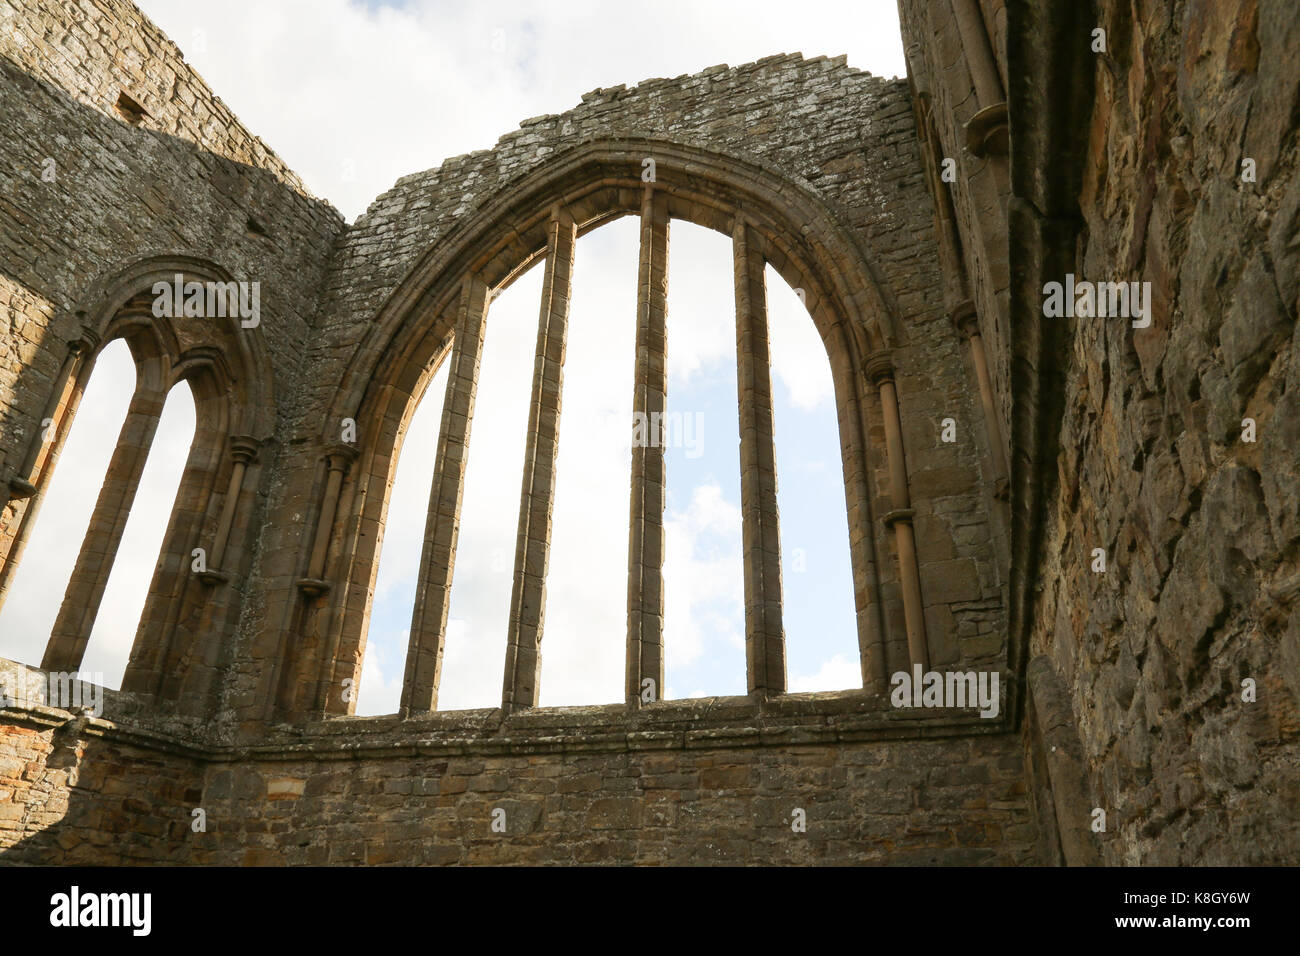 Egglestone Abbey is an abandoned Premonstratensian Abbey on the southern bank of the River Tees, County Durham, - Stock Image